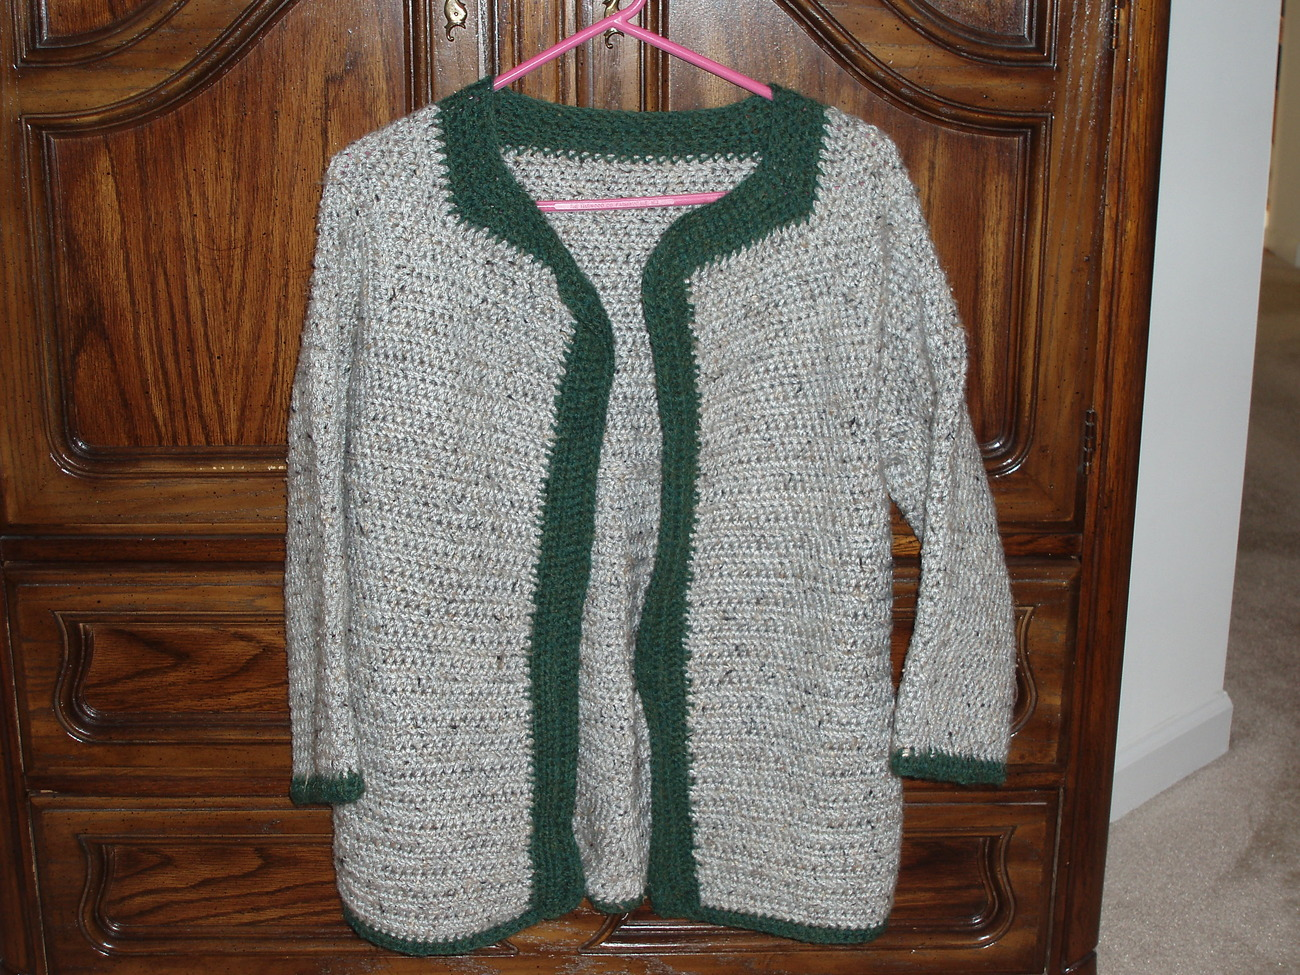 Gray wool sweater jacket with dark green trim